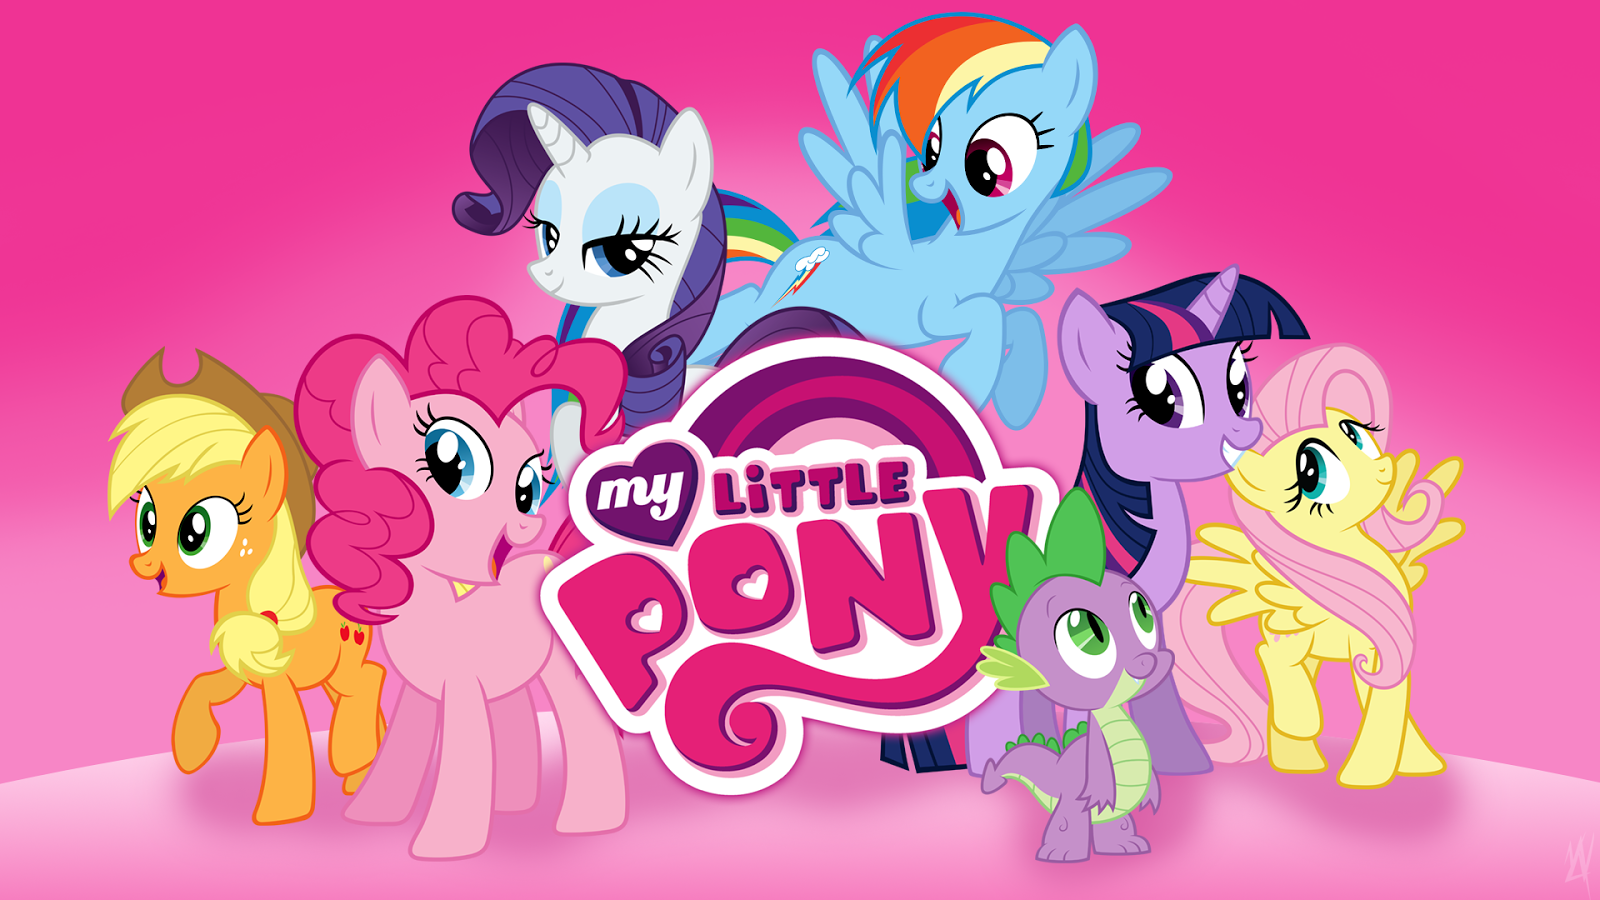 Avril Lavigne Wallpapers My Little Pony Fim Hd Wallpaper 1600x900